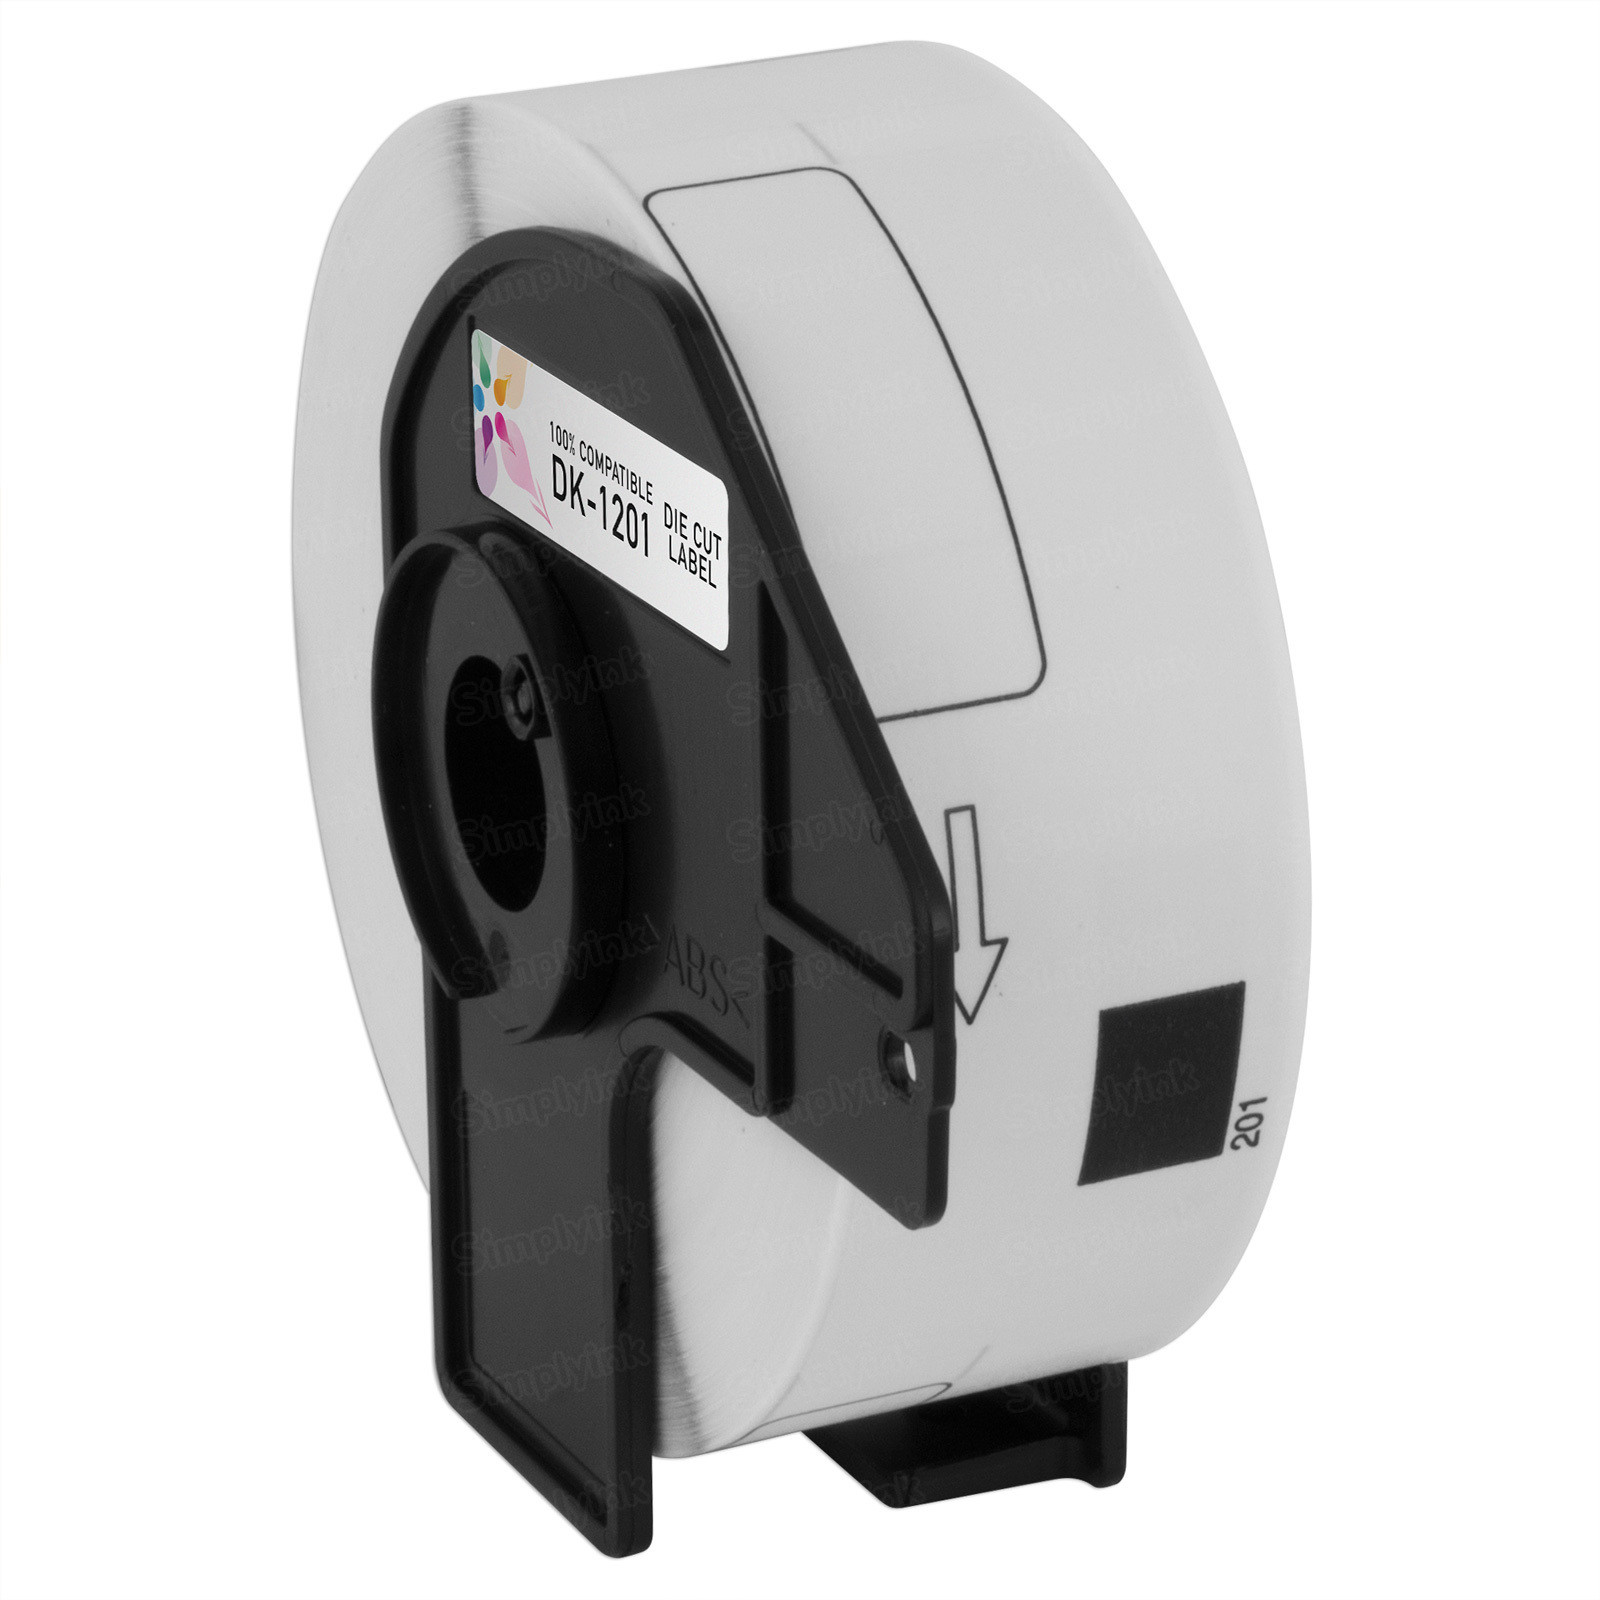 Compatible Replacement for Brother DK-1201 Address Labels for Brother